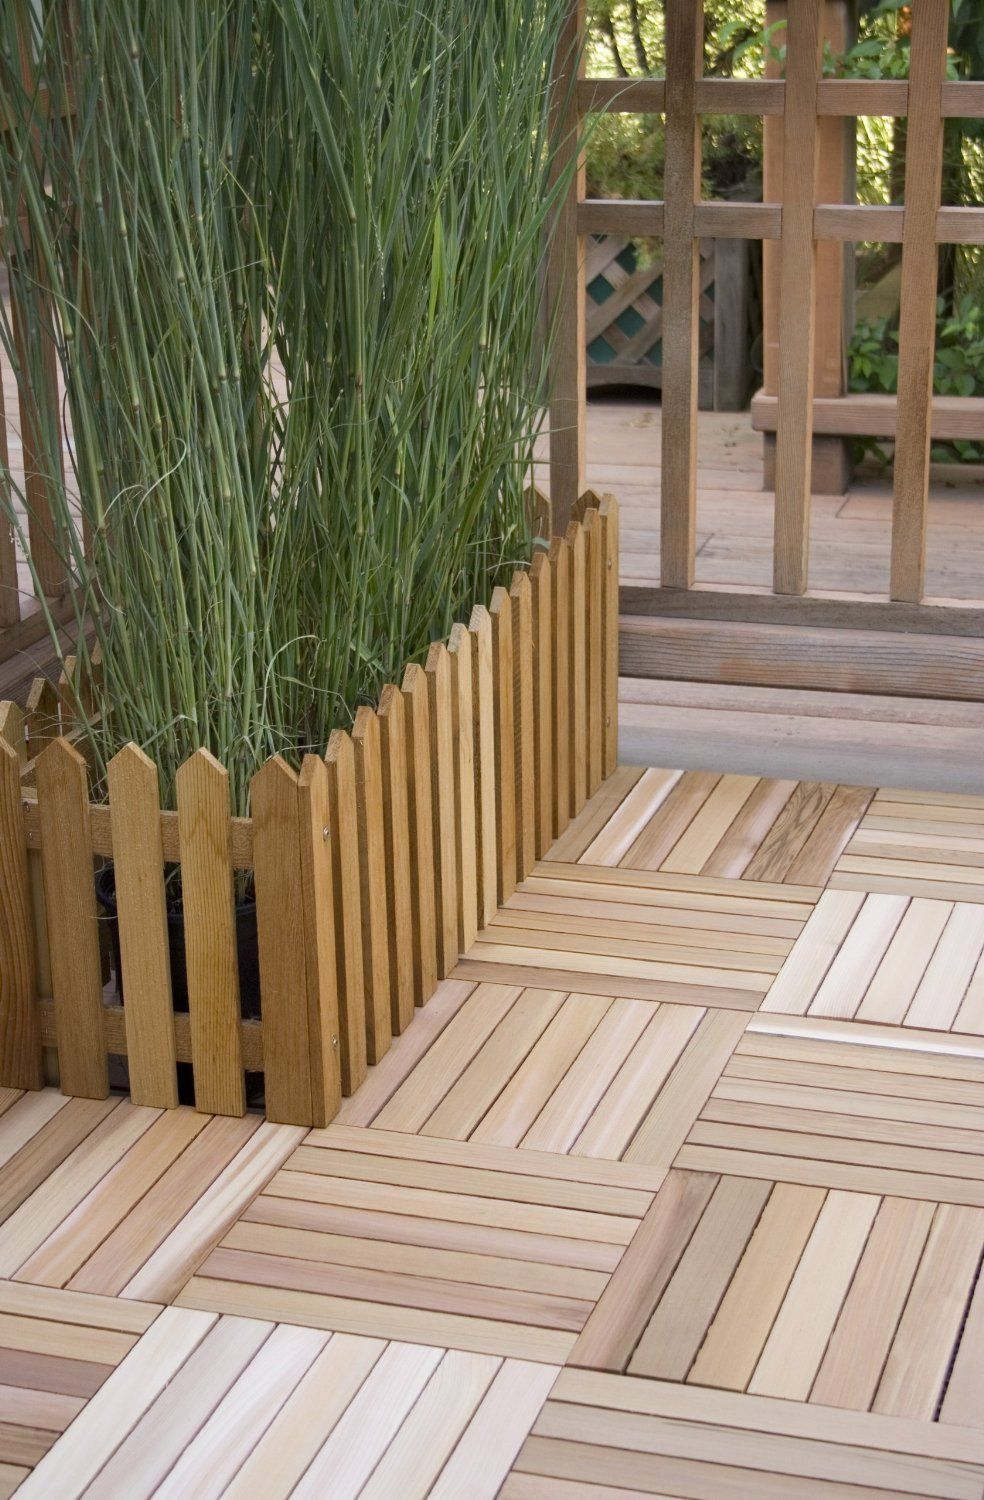 Deck Tiles  They can be used over concrete and directly over grass as long as level  Trellis